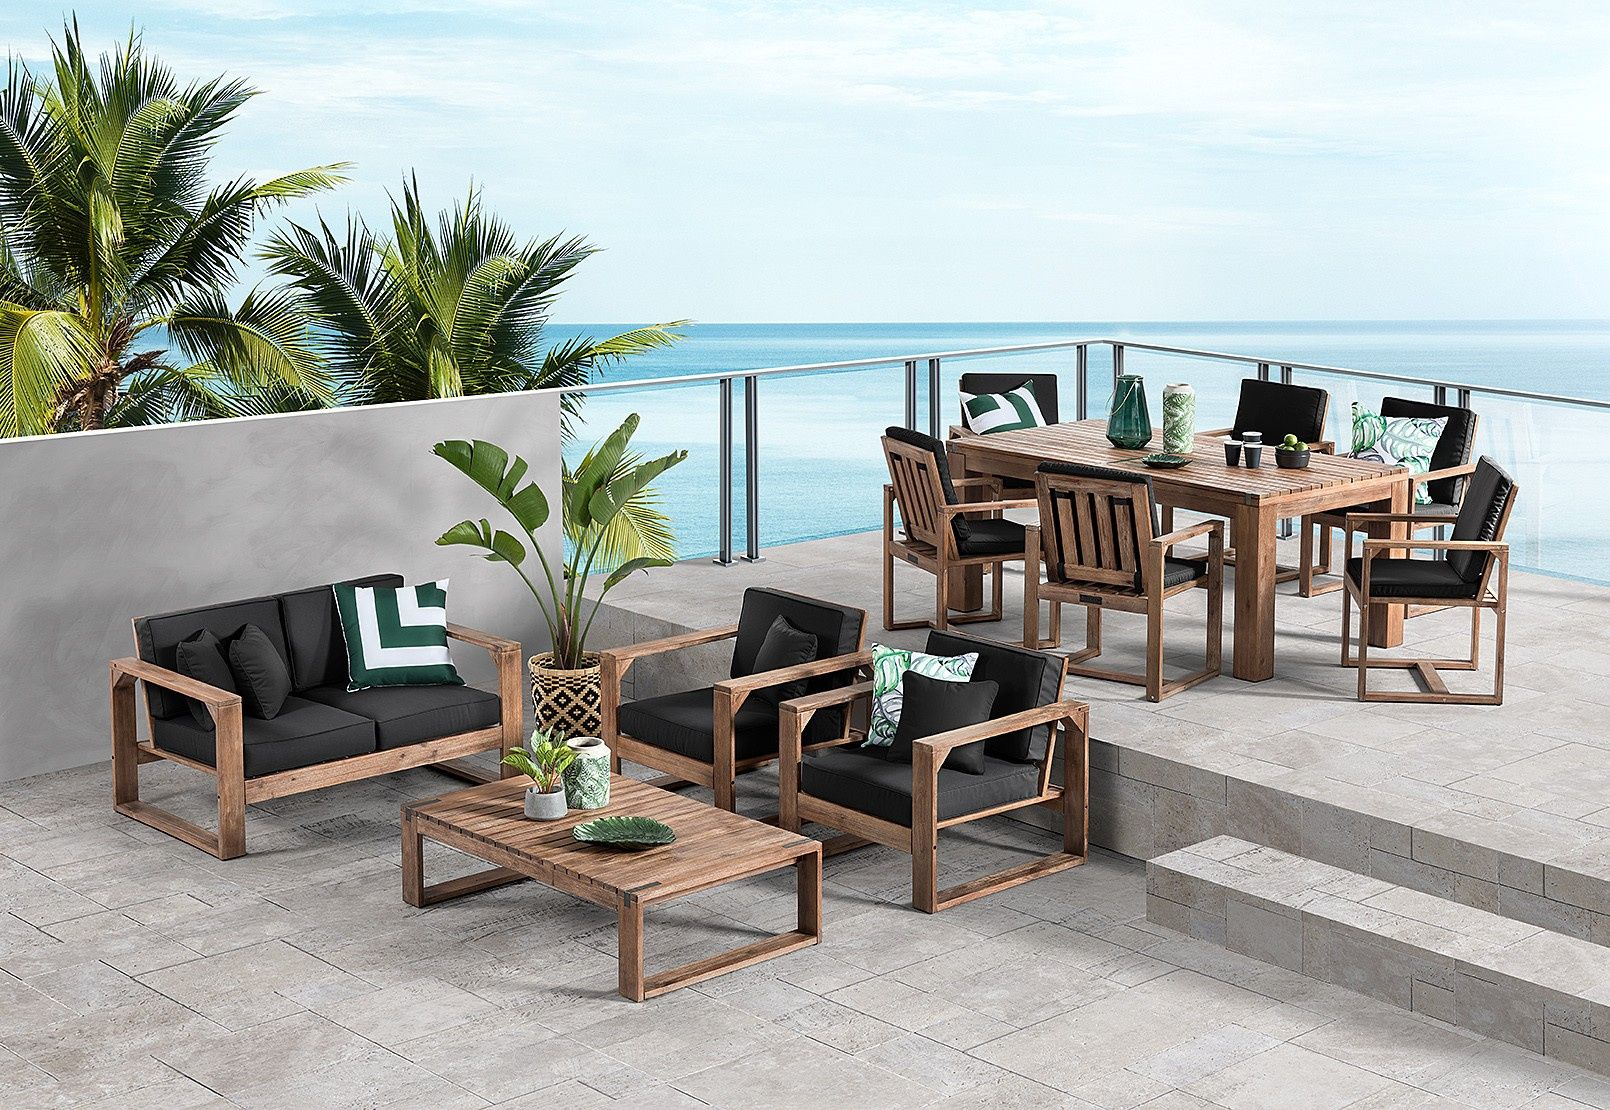 Outdoor Furniture Packages Best Home Furniture Check More At Http Cacophonouscreations Com Outdoor Furniture Pa Outdoor Lounge Outdoor Lounge Set Furniture